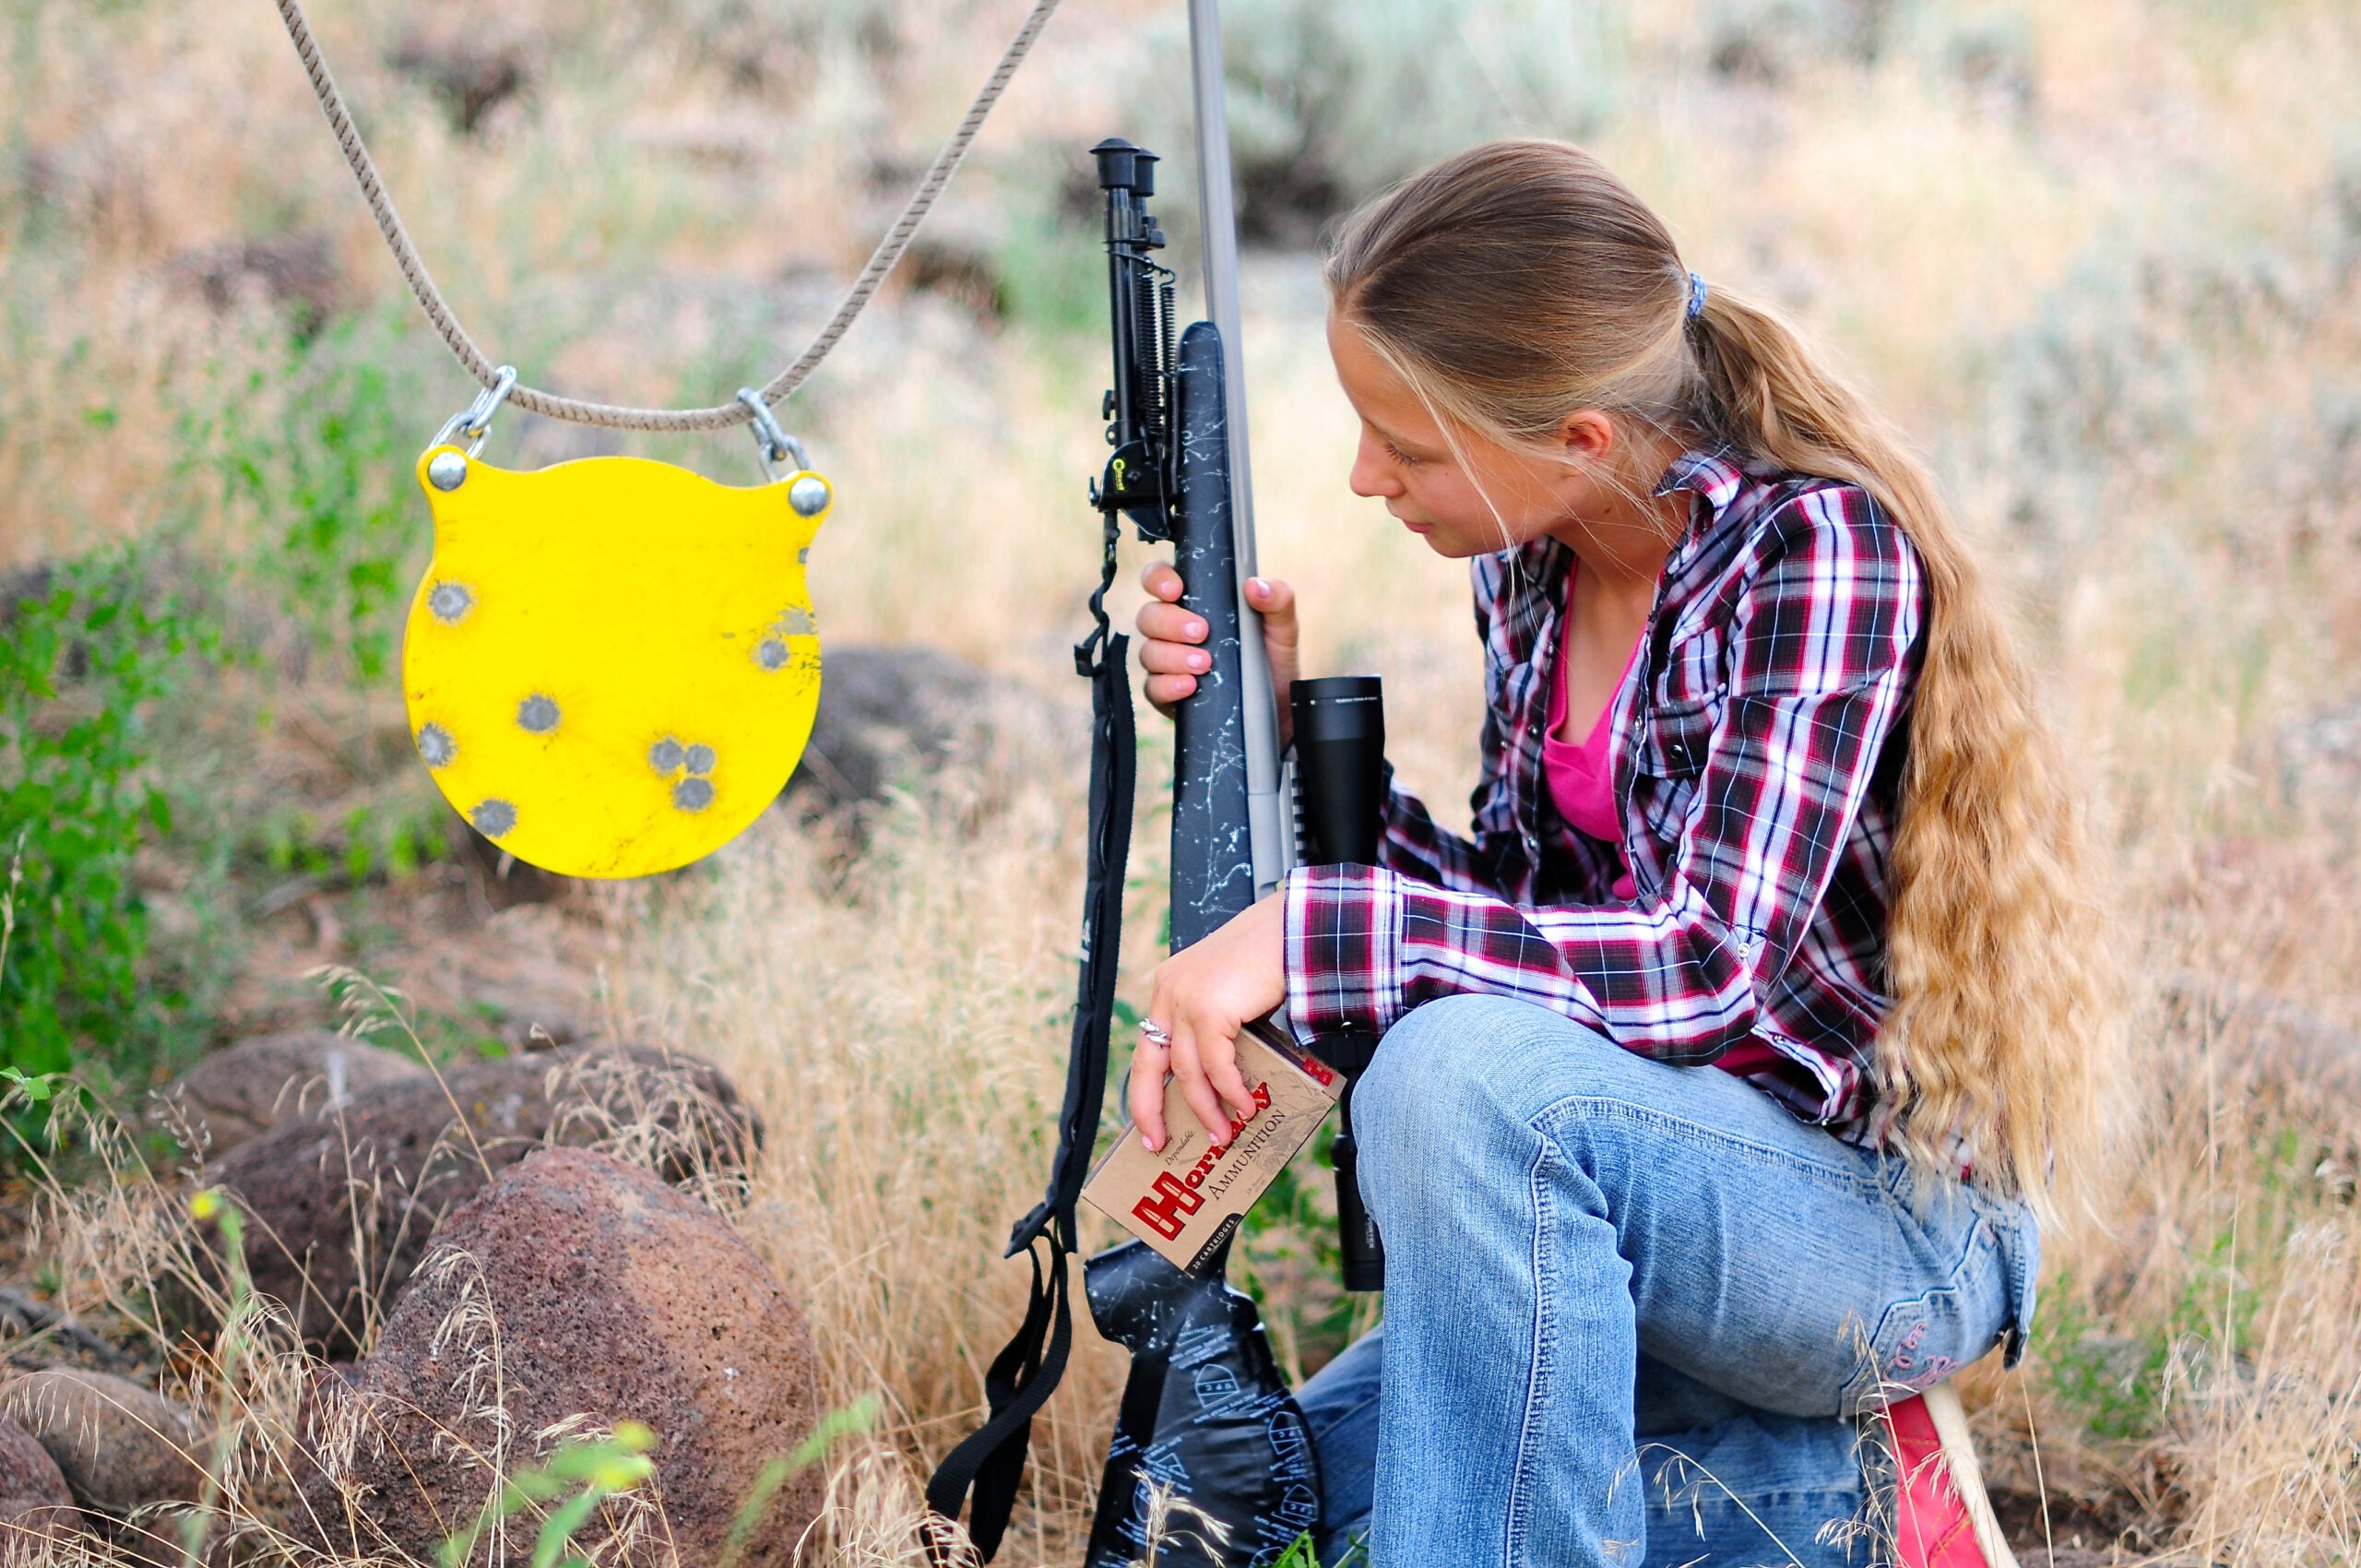 Ringing Steel: The Right Metal and Practice for Swinging Targets